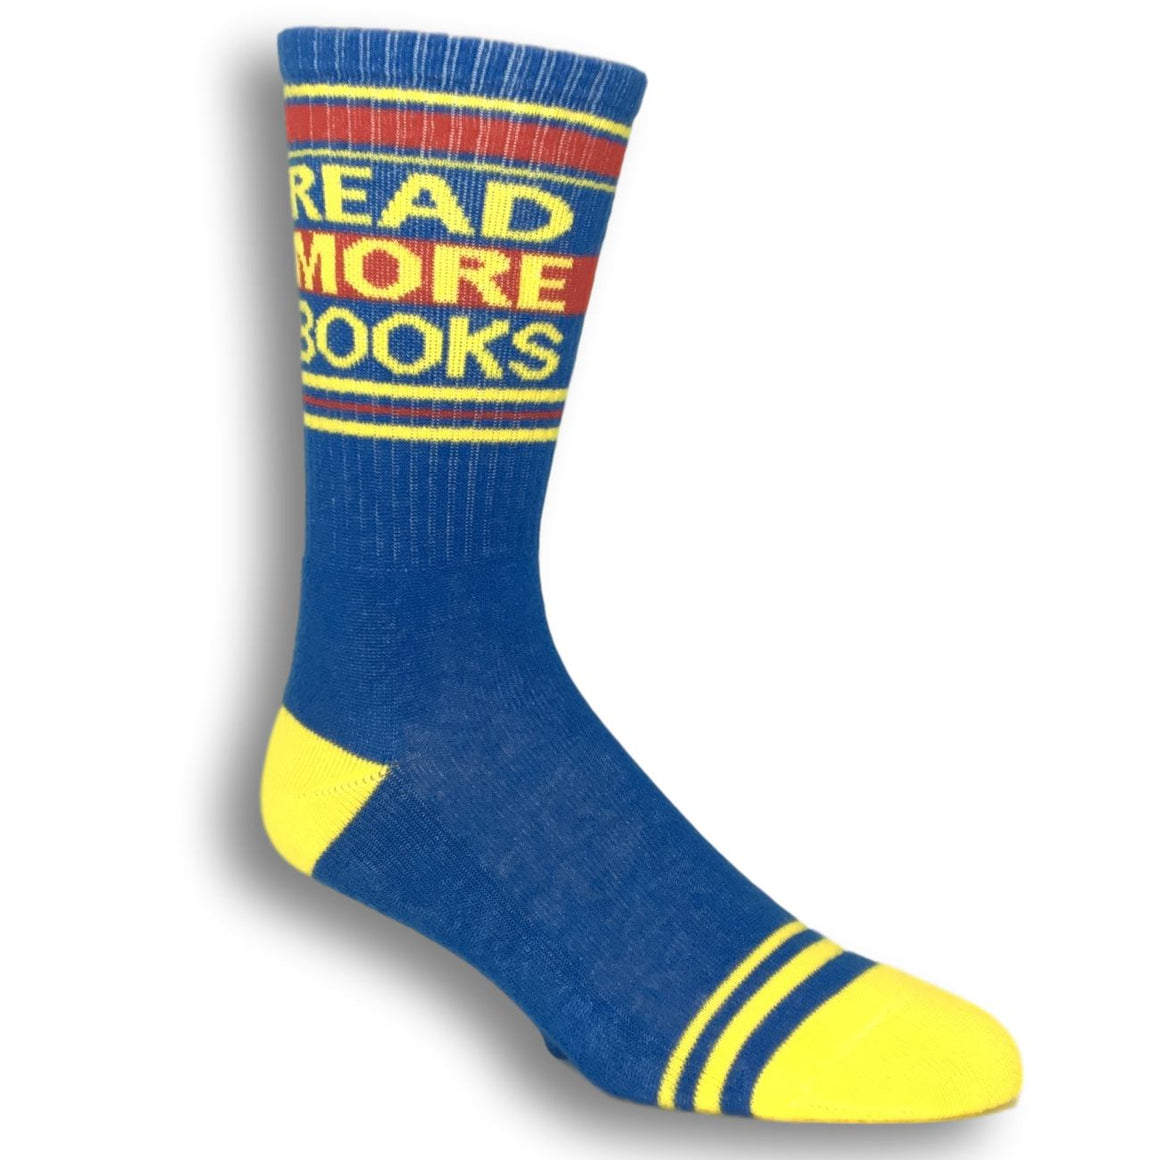 Read More Books Athletic Socks By Gumball Poodle